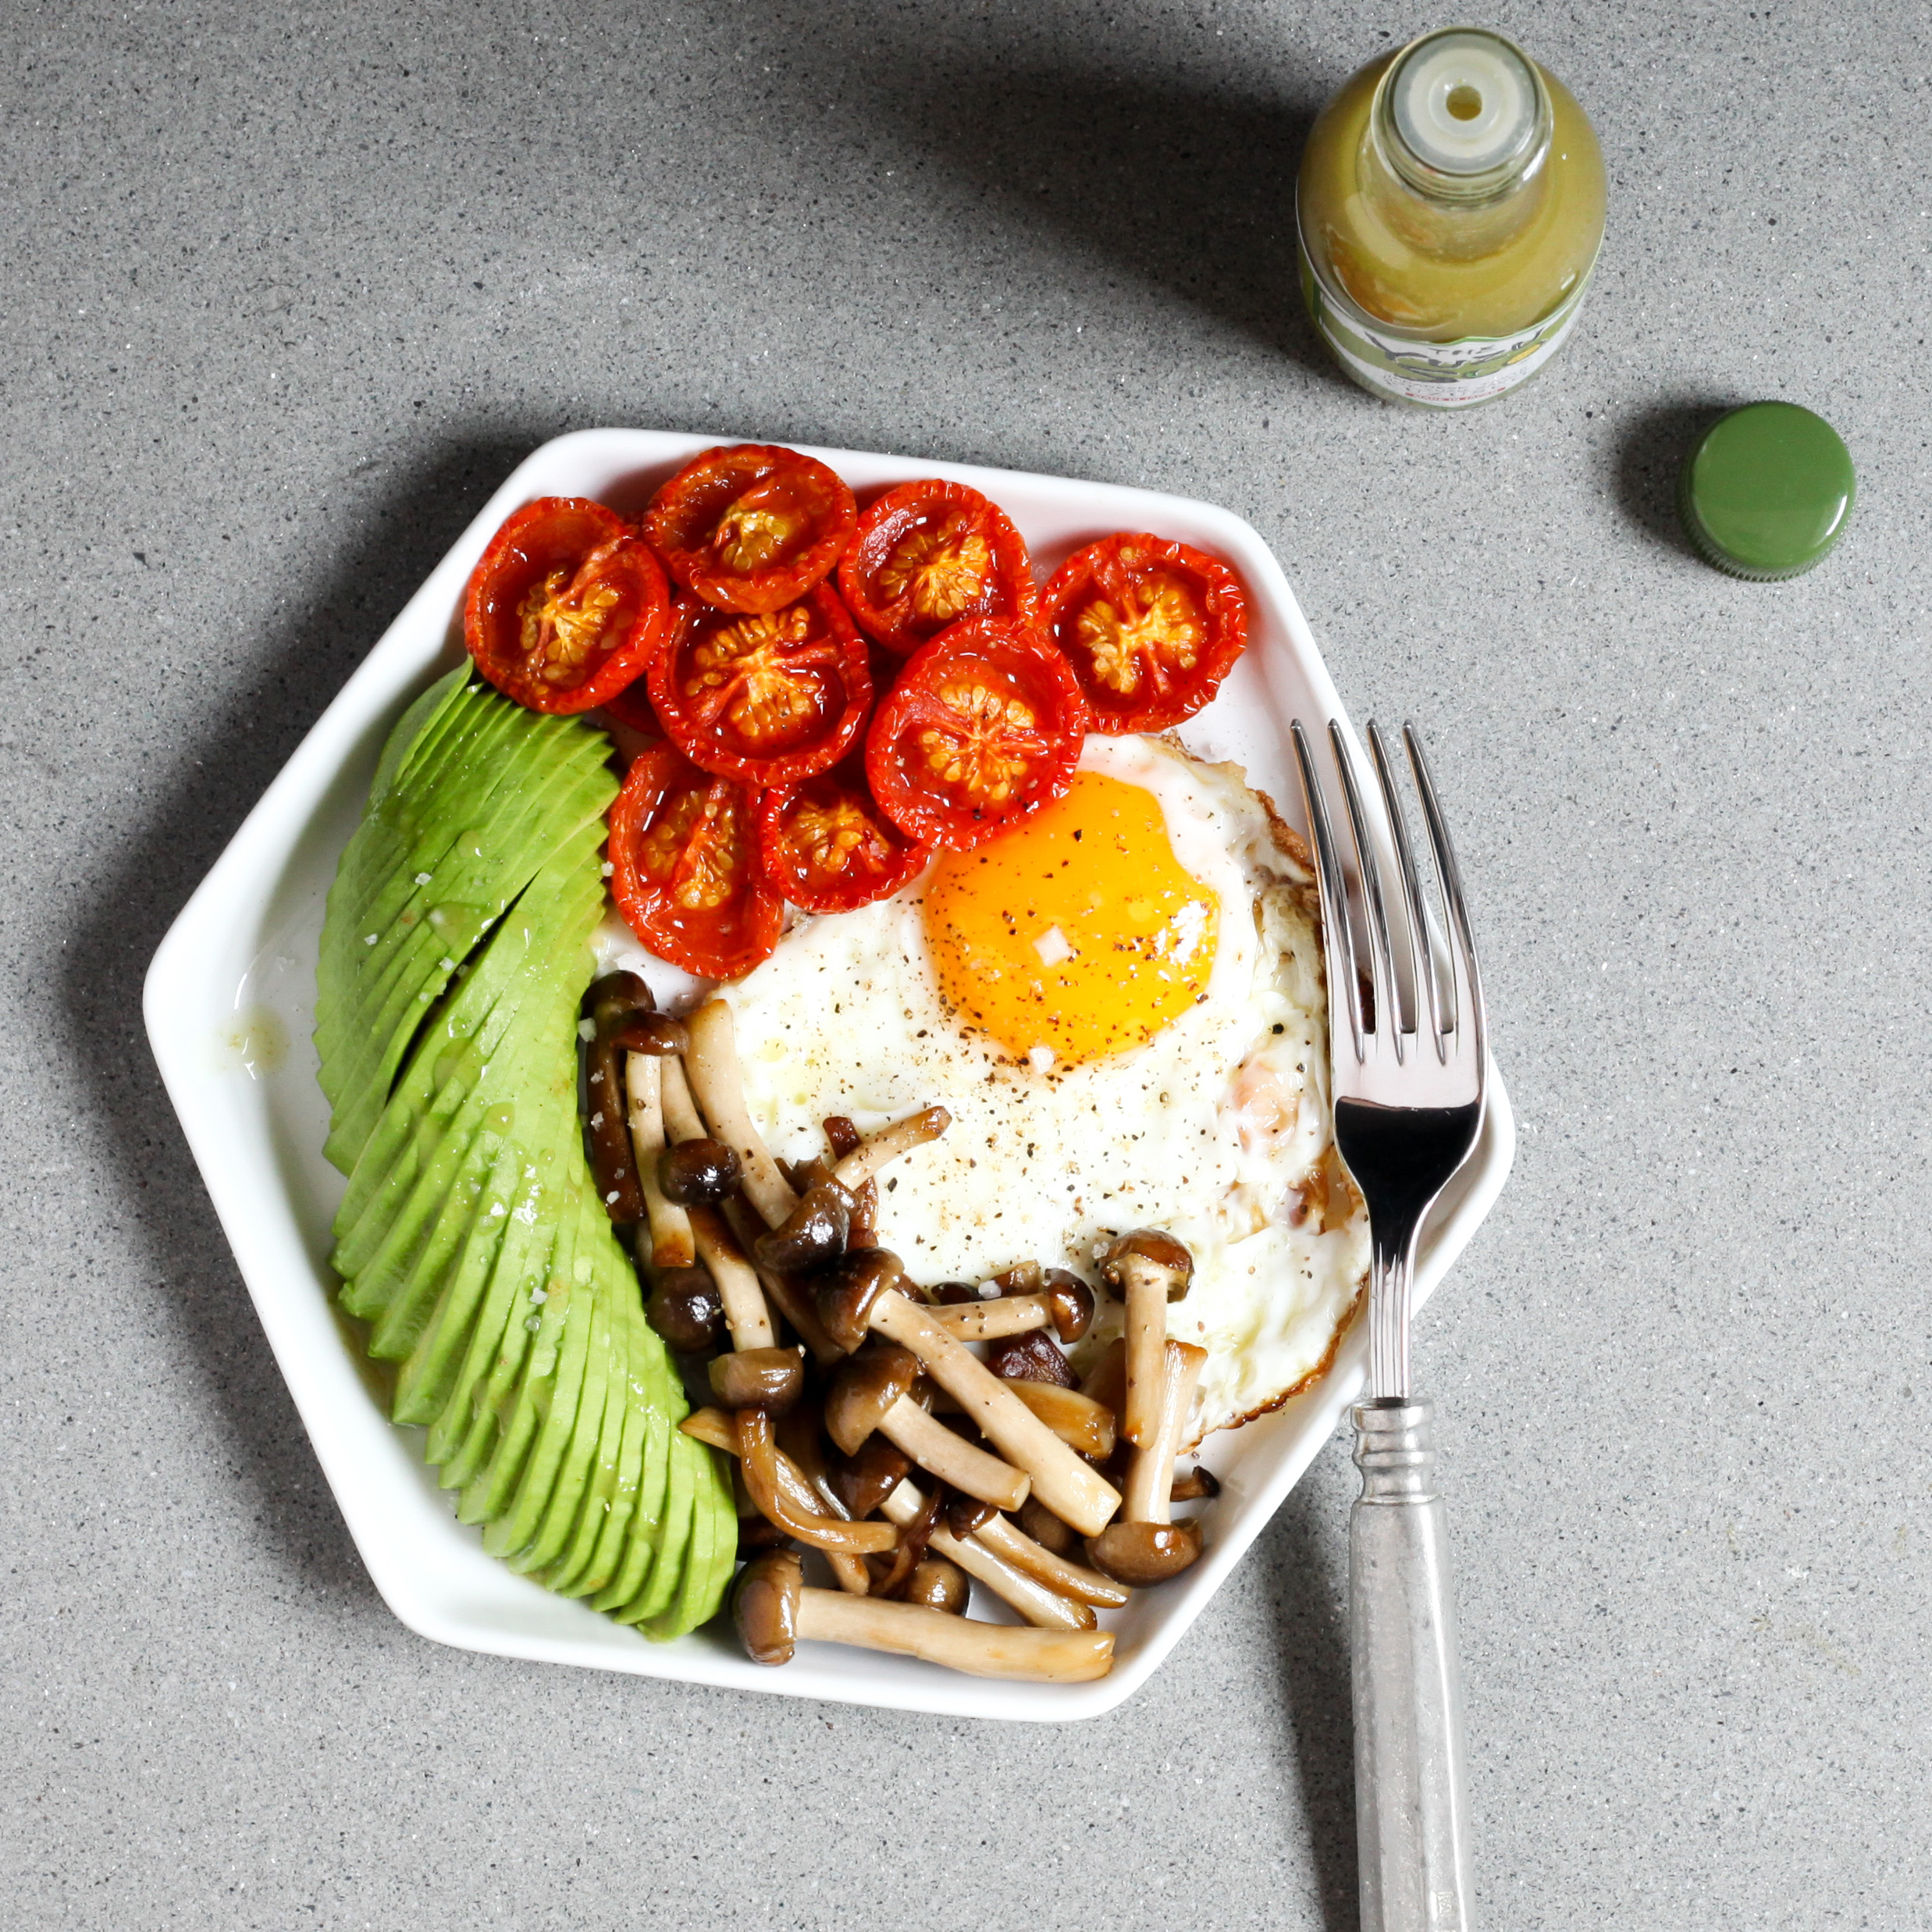 Fried Eggs With Roasted Tomatoes Avocado And Mushrooms Amodestfeast